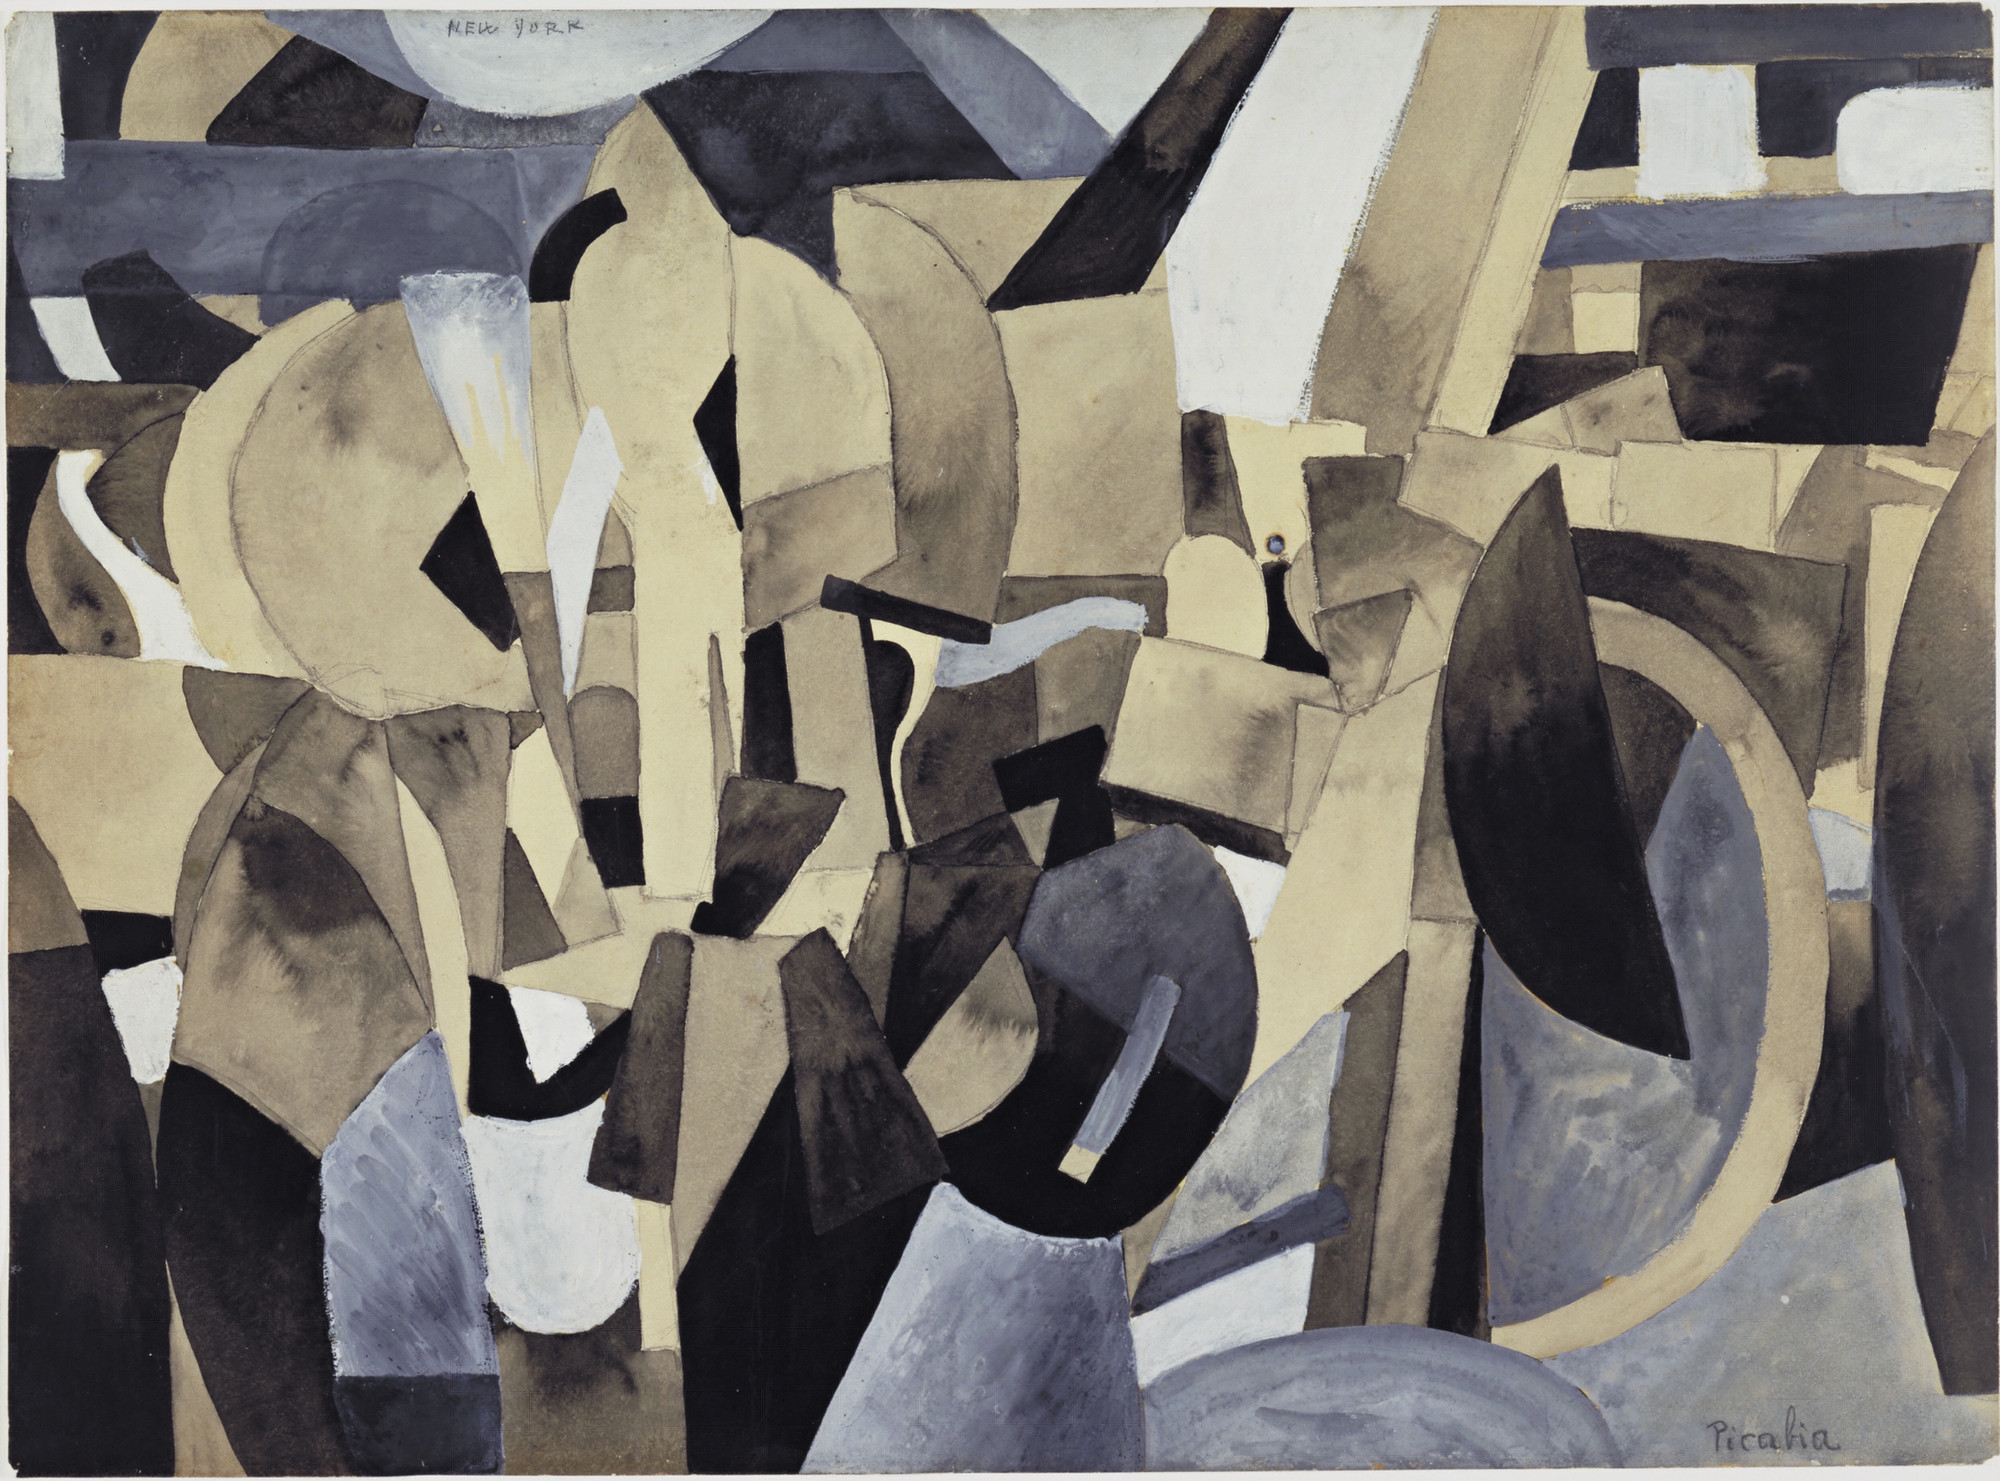 Francis Picabia. New York. (1913)